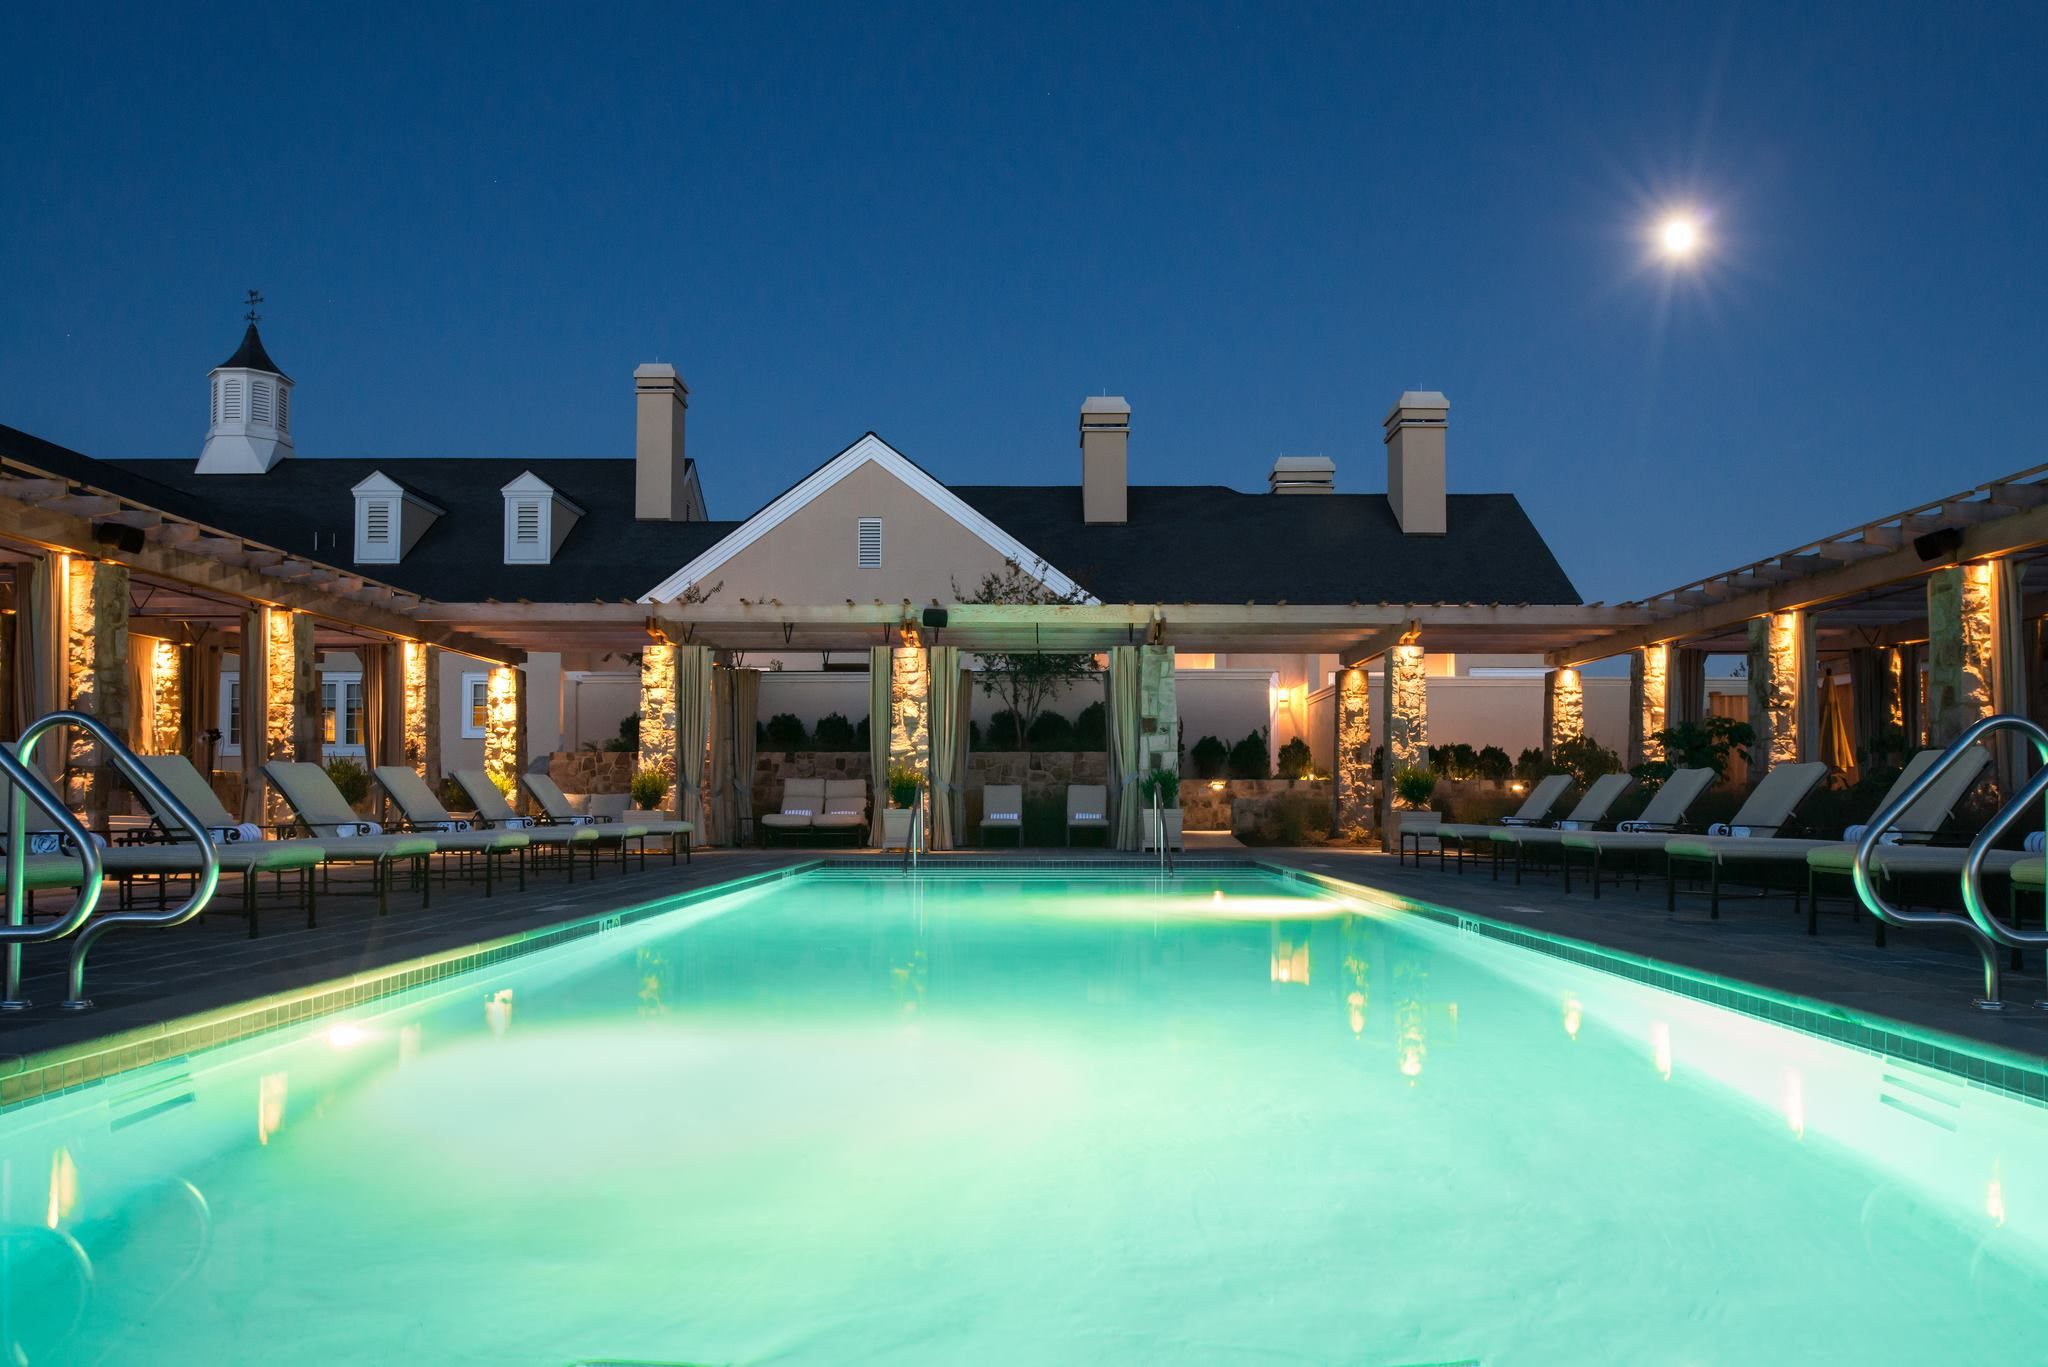 Salamander Inn Middleburg Va This Outdoor Pool Is Heated Even In Cold Weather With Fire Pits